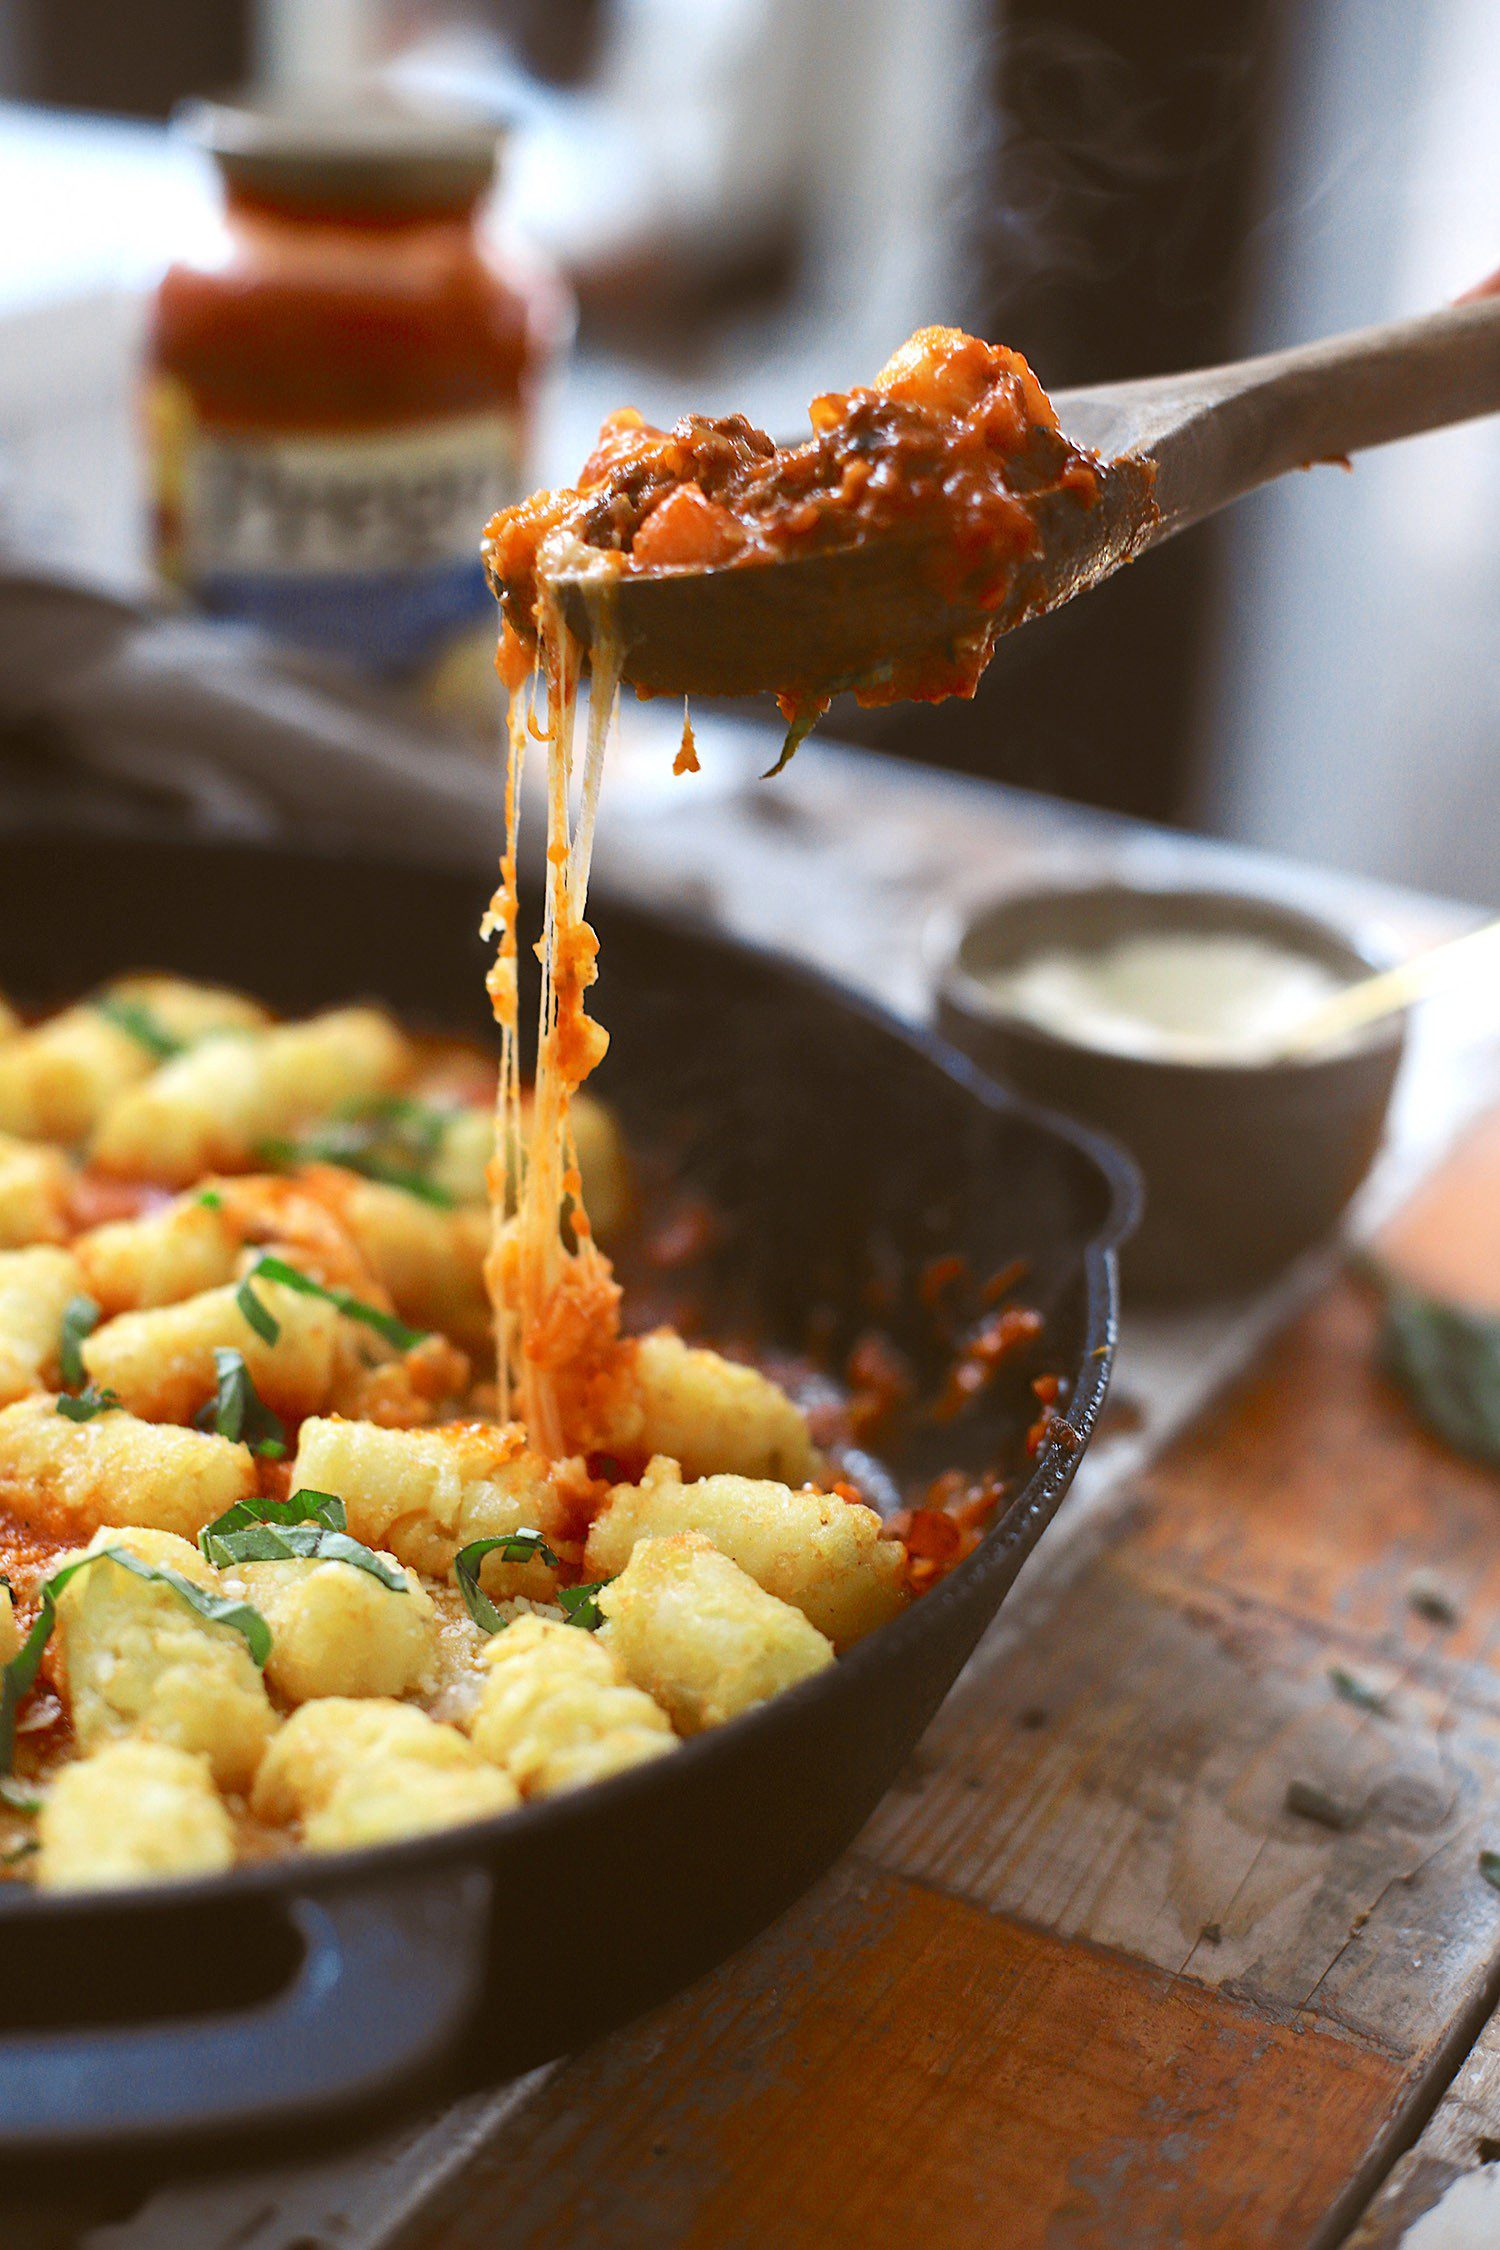 This simple one skillet Bolognese Tater Tot Casserole made with Prego® is a delicious family dinner that you can make perfect any time of year with pantry staples. Think of a cross between a classic bolognese pasta and that quintessential midwest style tater tot casserole. With a cast-iron skillet, this meal boasts slowly caramelized onions in white wine, the secret vegetables of a classic bolognese, and ground beef…all cooked together in one skillet, topped with plenty of cheese, tater tots, and herbs. Simply cook the skillet in the oven to create the perfect crispy tots and cheesy, one skillet dinner! | Tater Tot Casserole by popular Florida lifestyle blog, Fresh Mommy Blog: image of a one skillet bolognese tater tot casserole in a skillet.